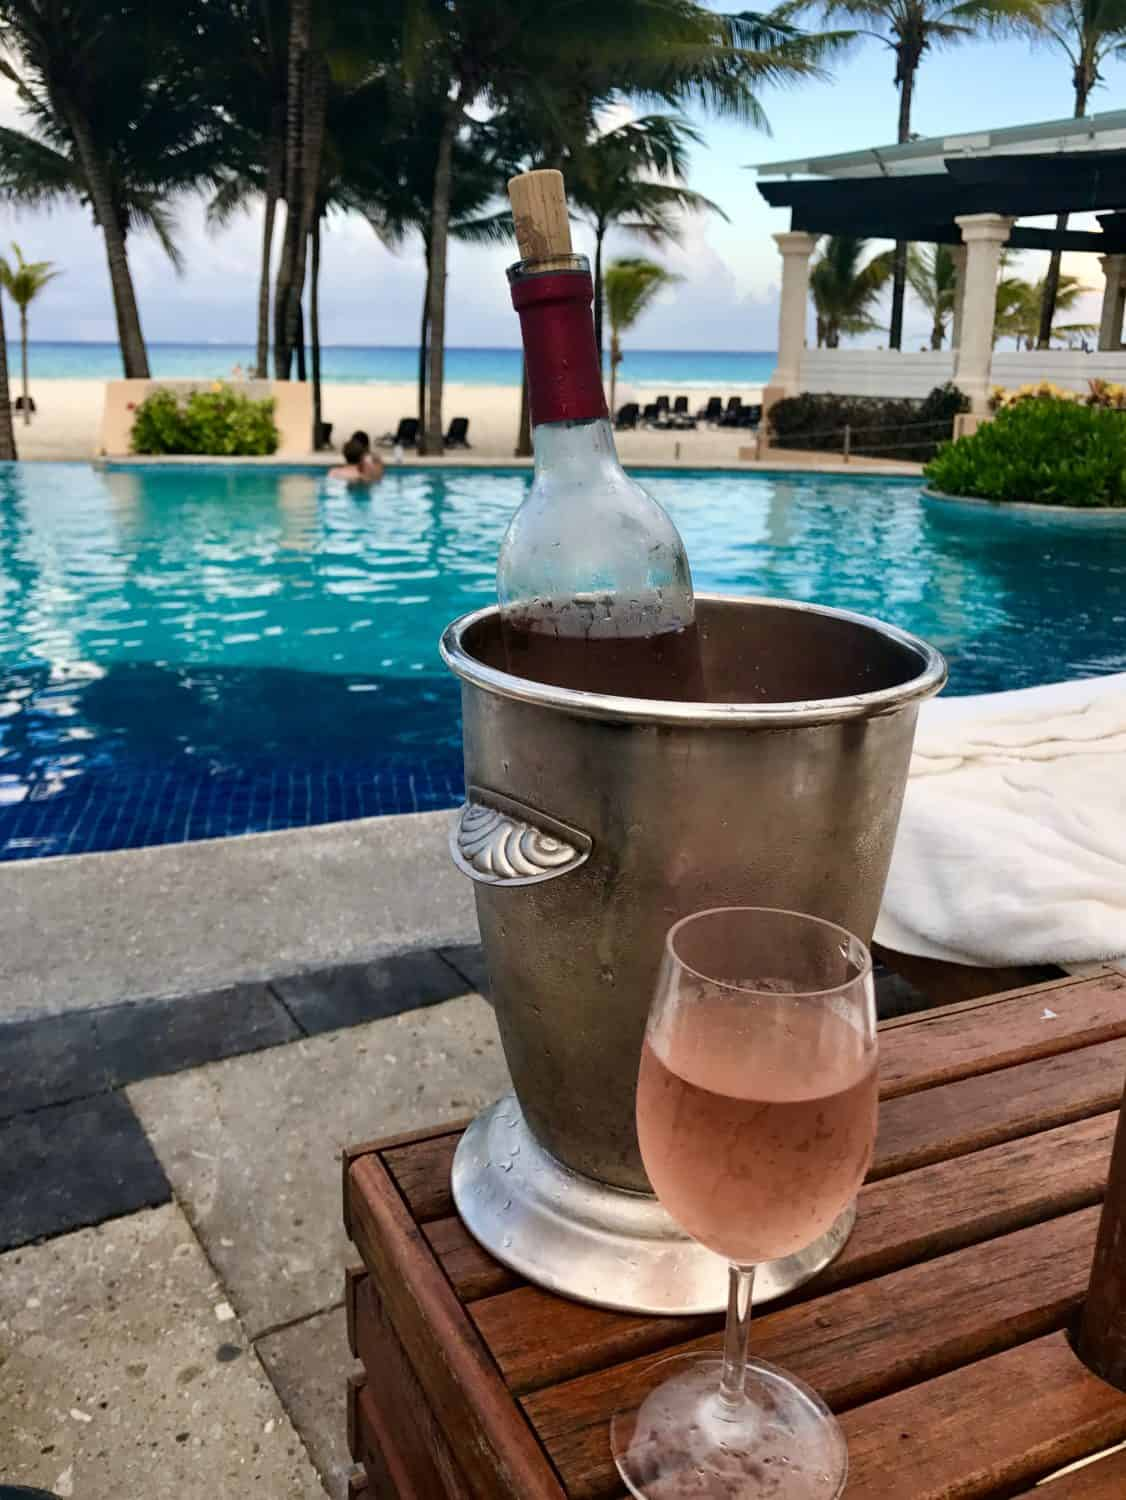 All about my first all-inclusive resort experience at Royal Hideaway Playacar